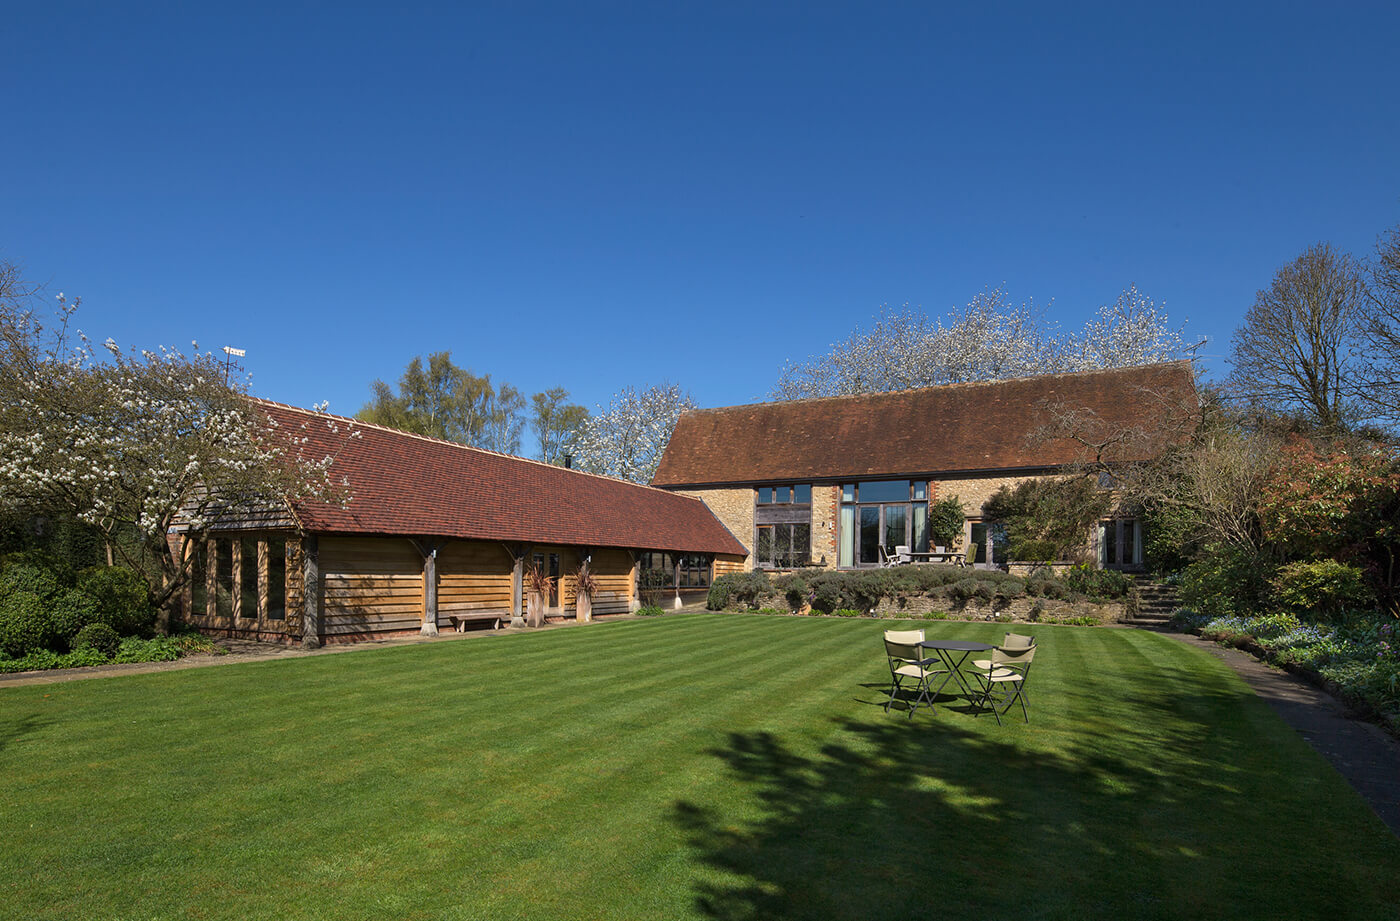 A stunning Oxfordshire barn conversion... - With a fully featured Loxone Smart Home automation system controlling the lighting, heating and security in the most efficient way possible.